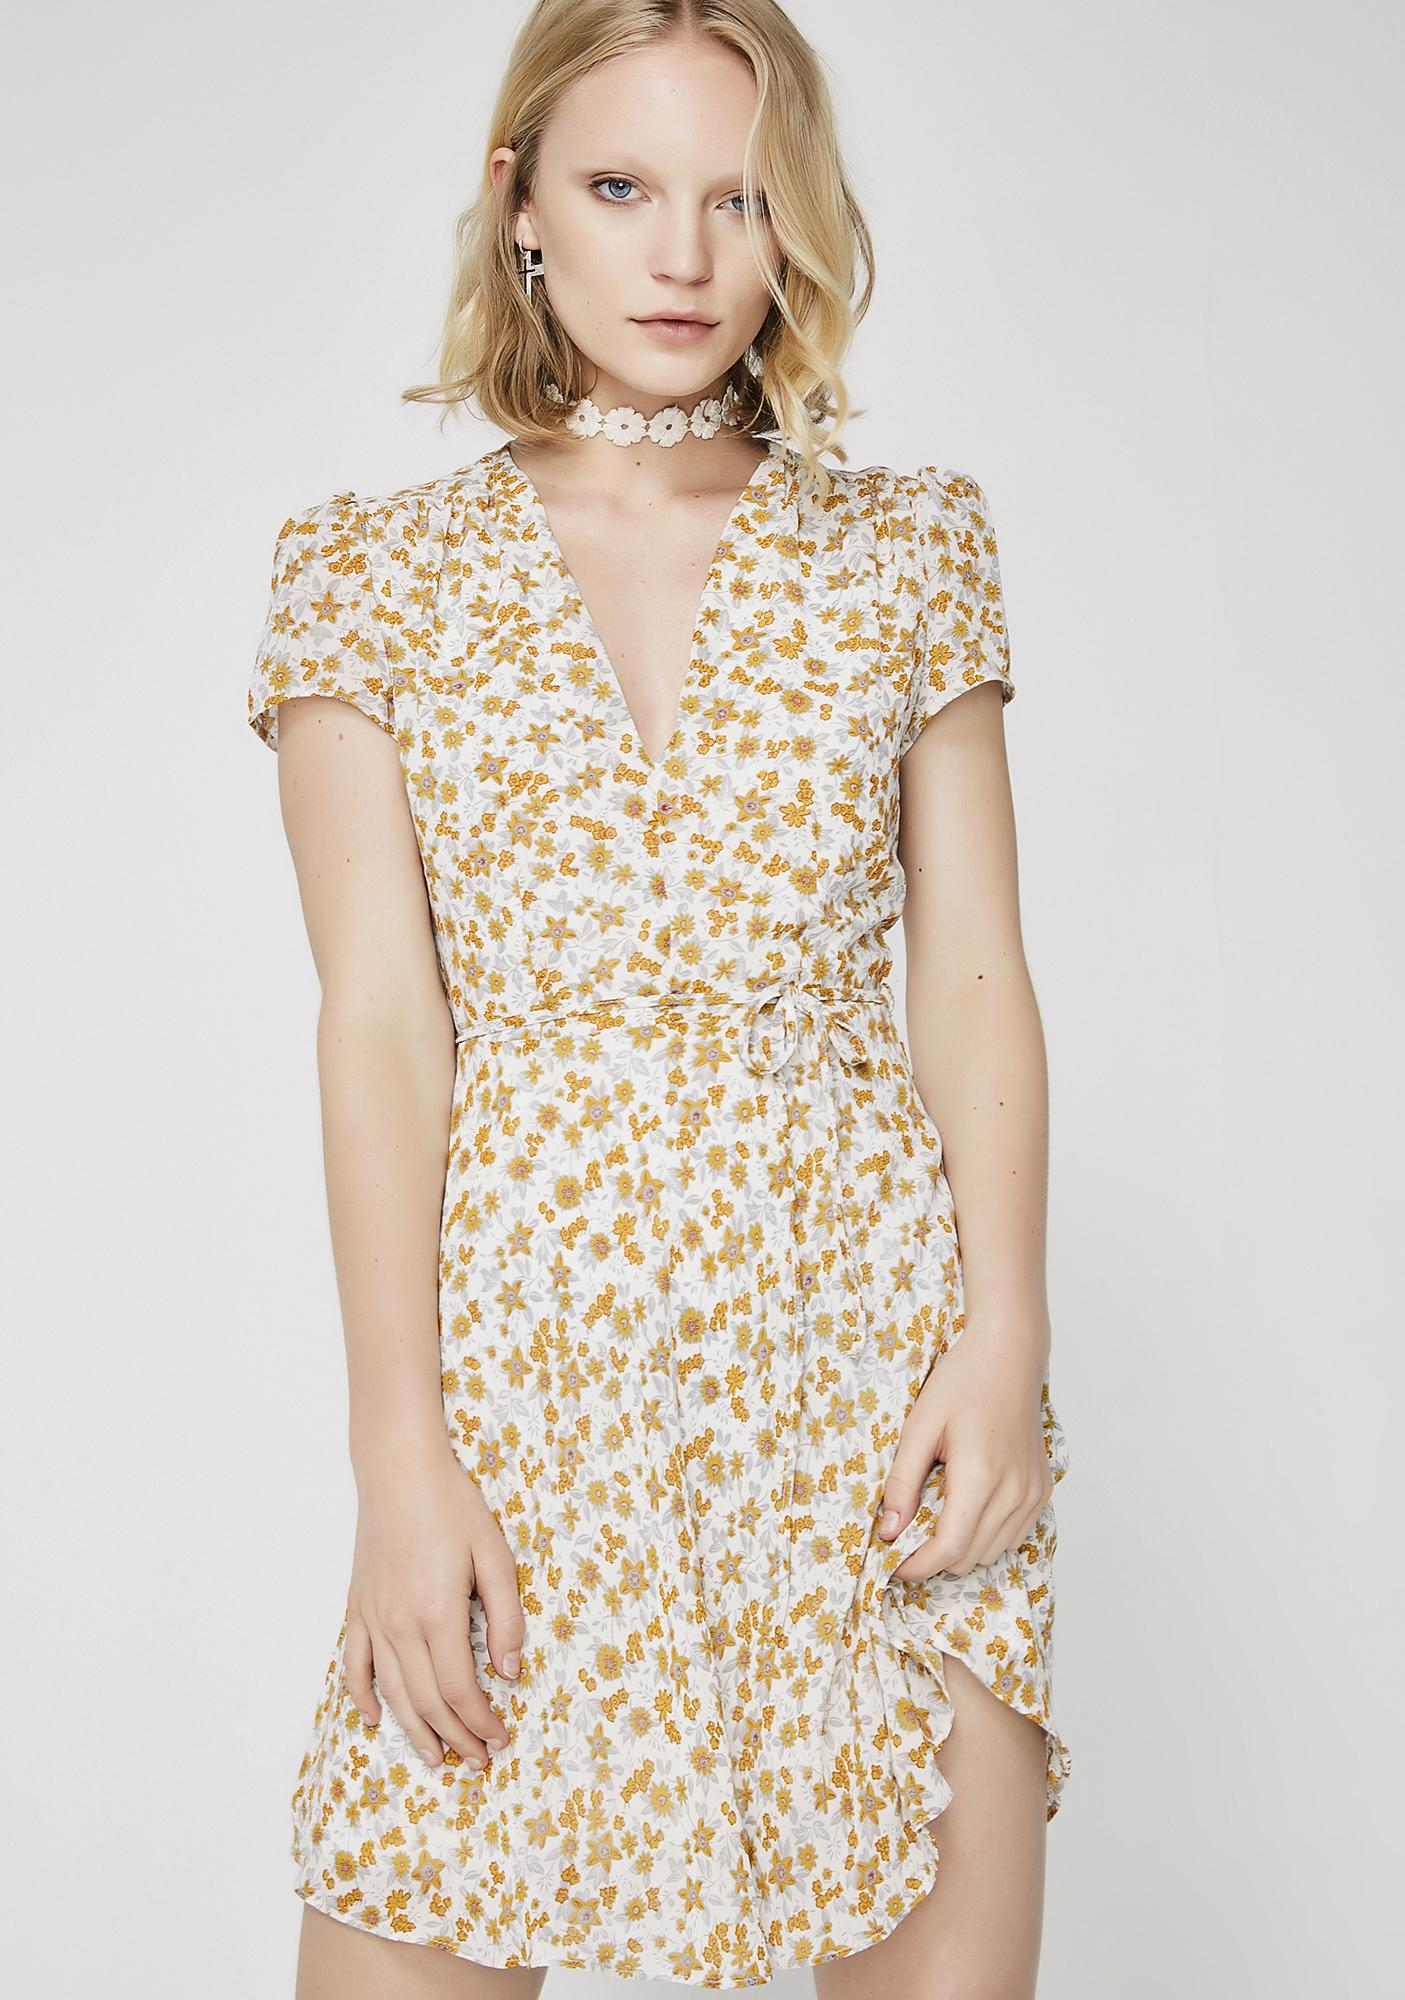 Glamorous Blooming Buds Mini Dress